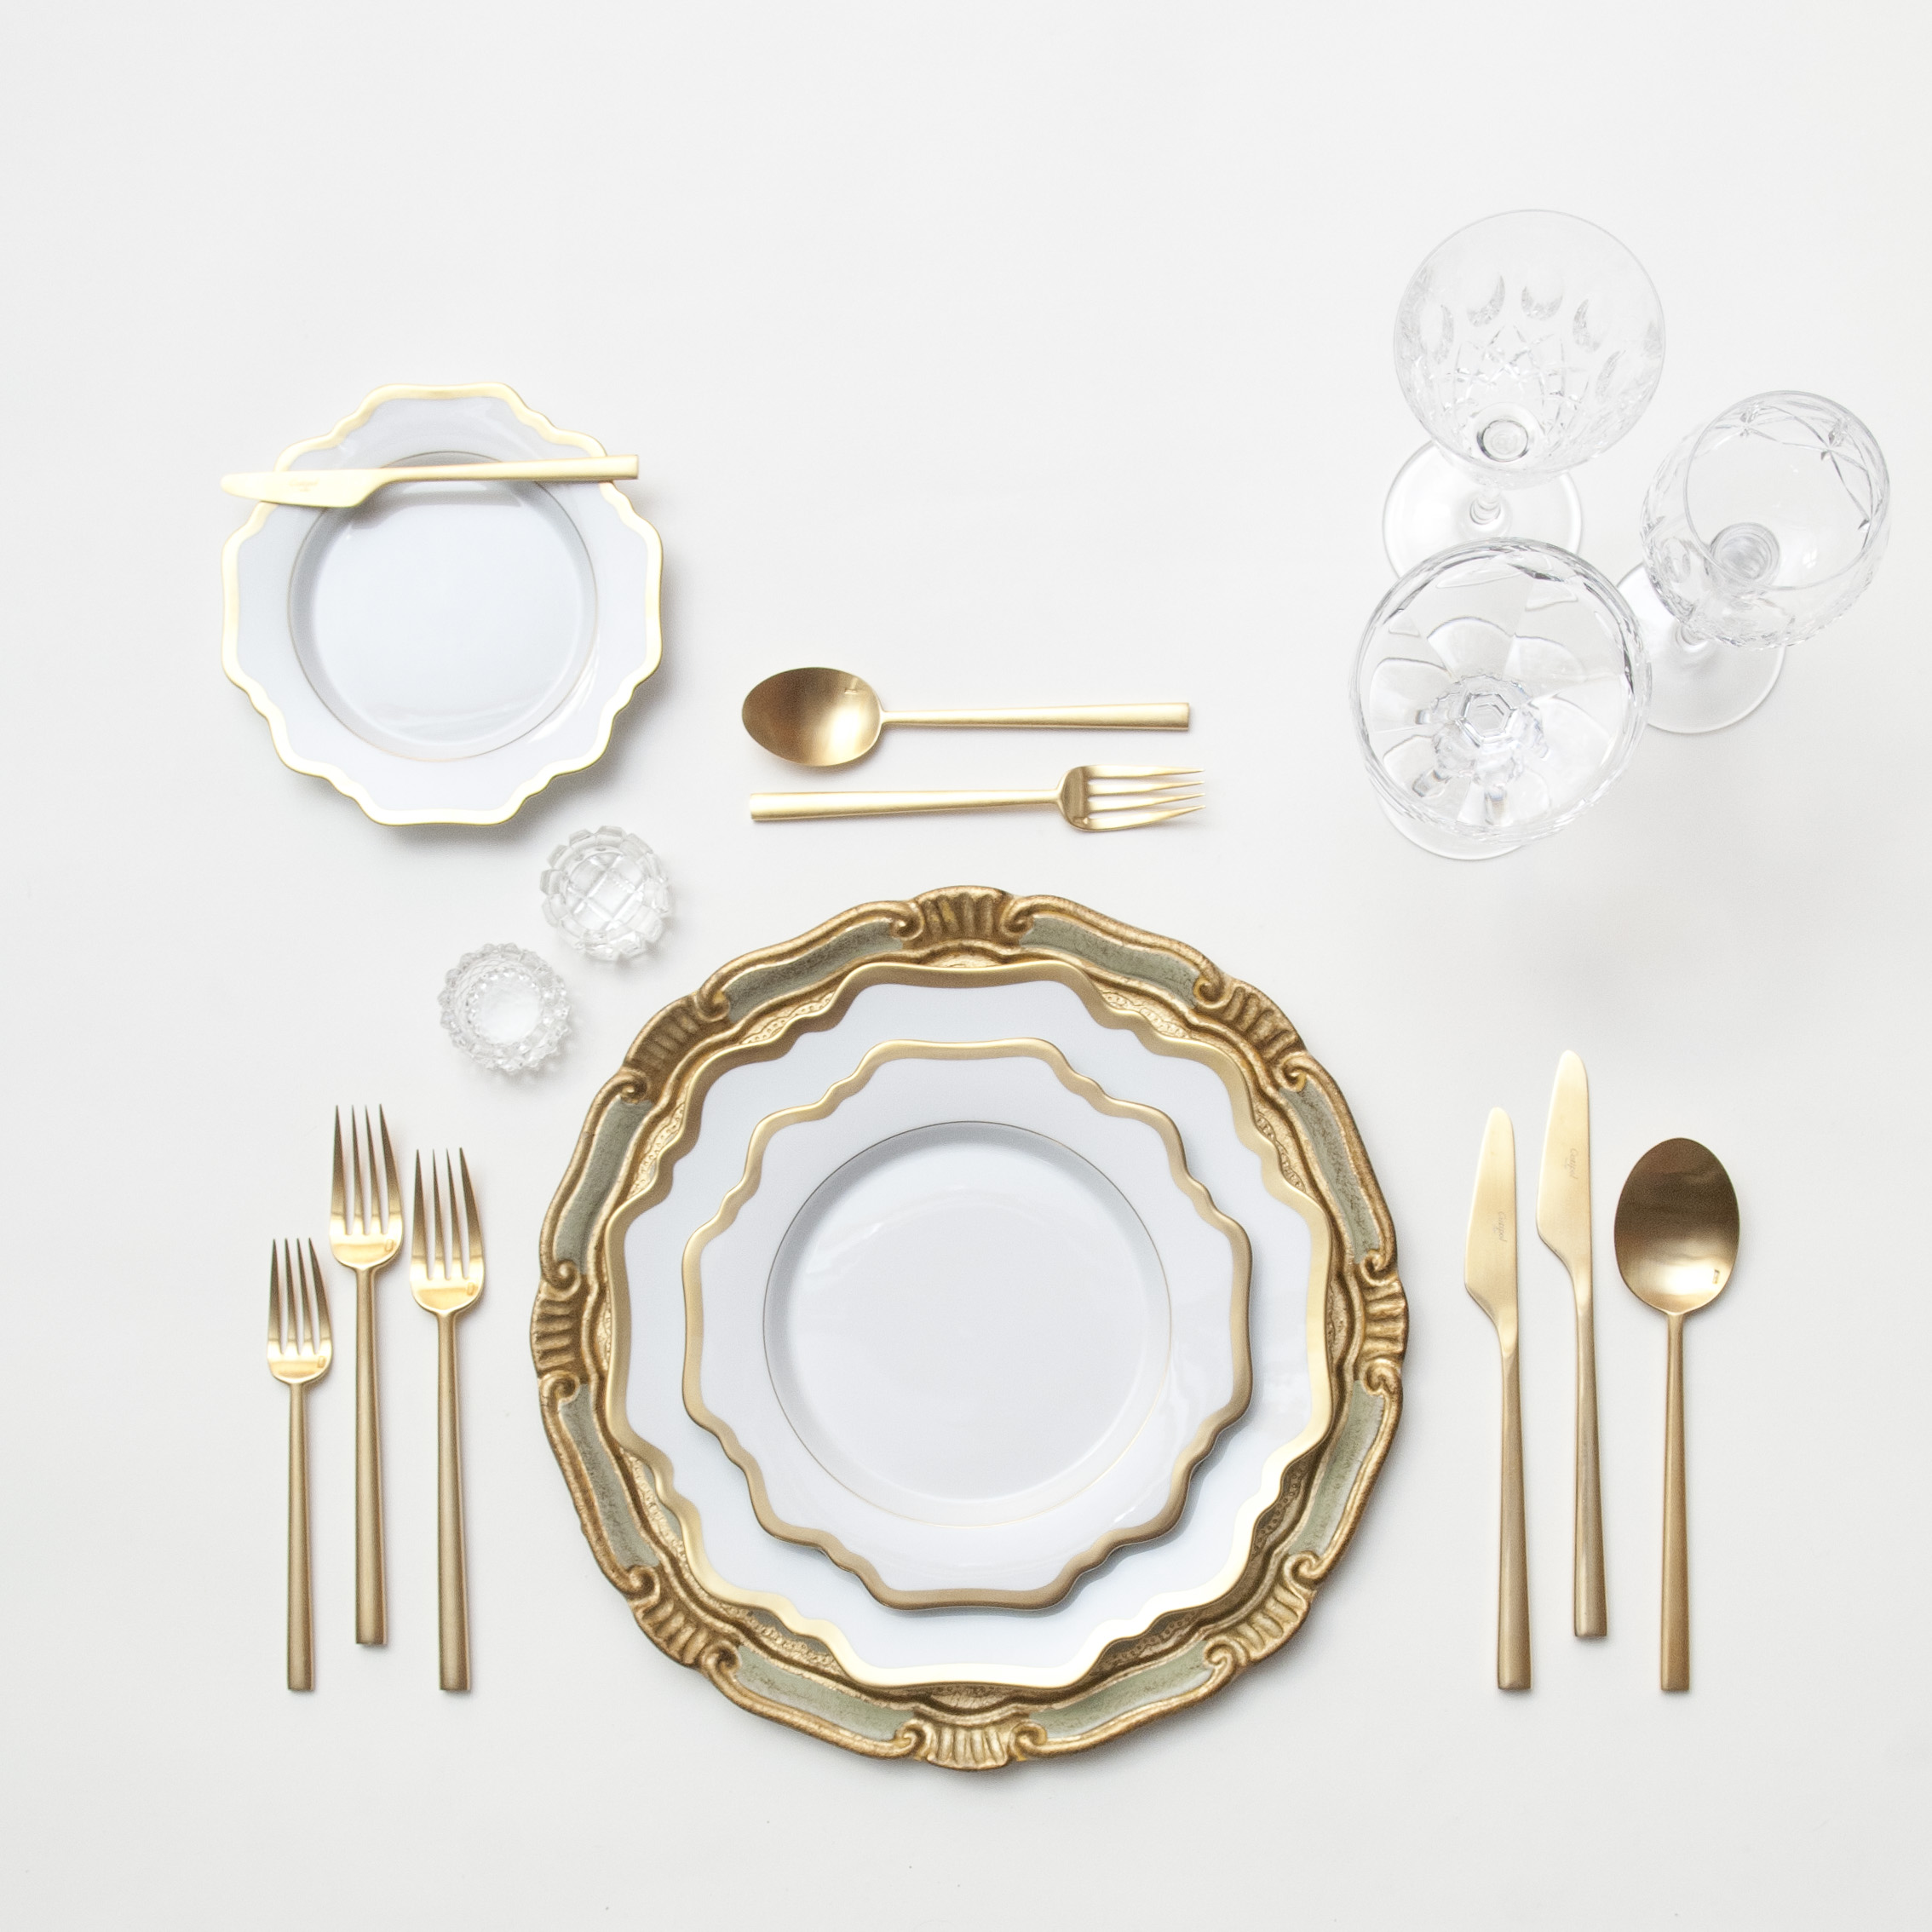 RENT: Florentine Chargers in Sage/Gold + Anna Weatherley Dinnerware in White/Gold + Rondo Flatware in Brushed 24k Gold + Vintage Cut Crystal Goblets + Vintage Champagne Coupes + Antique Crystal Salt Cellars   SHOP: Florentine Chargers in Sage/Gold + Anna Weatherley Dinnerware in White/Gold + Rondo Flatware in Brushed 24k Gold